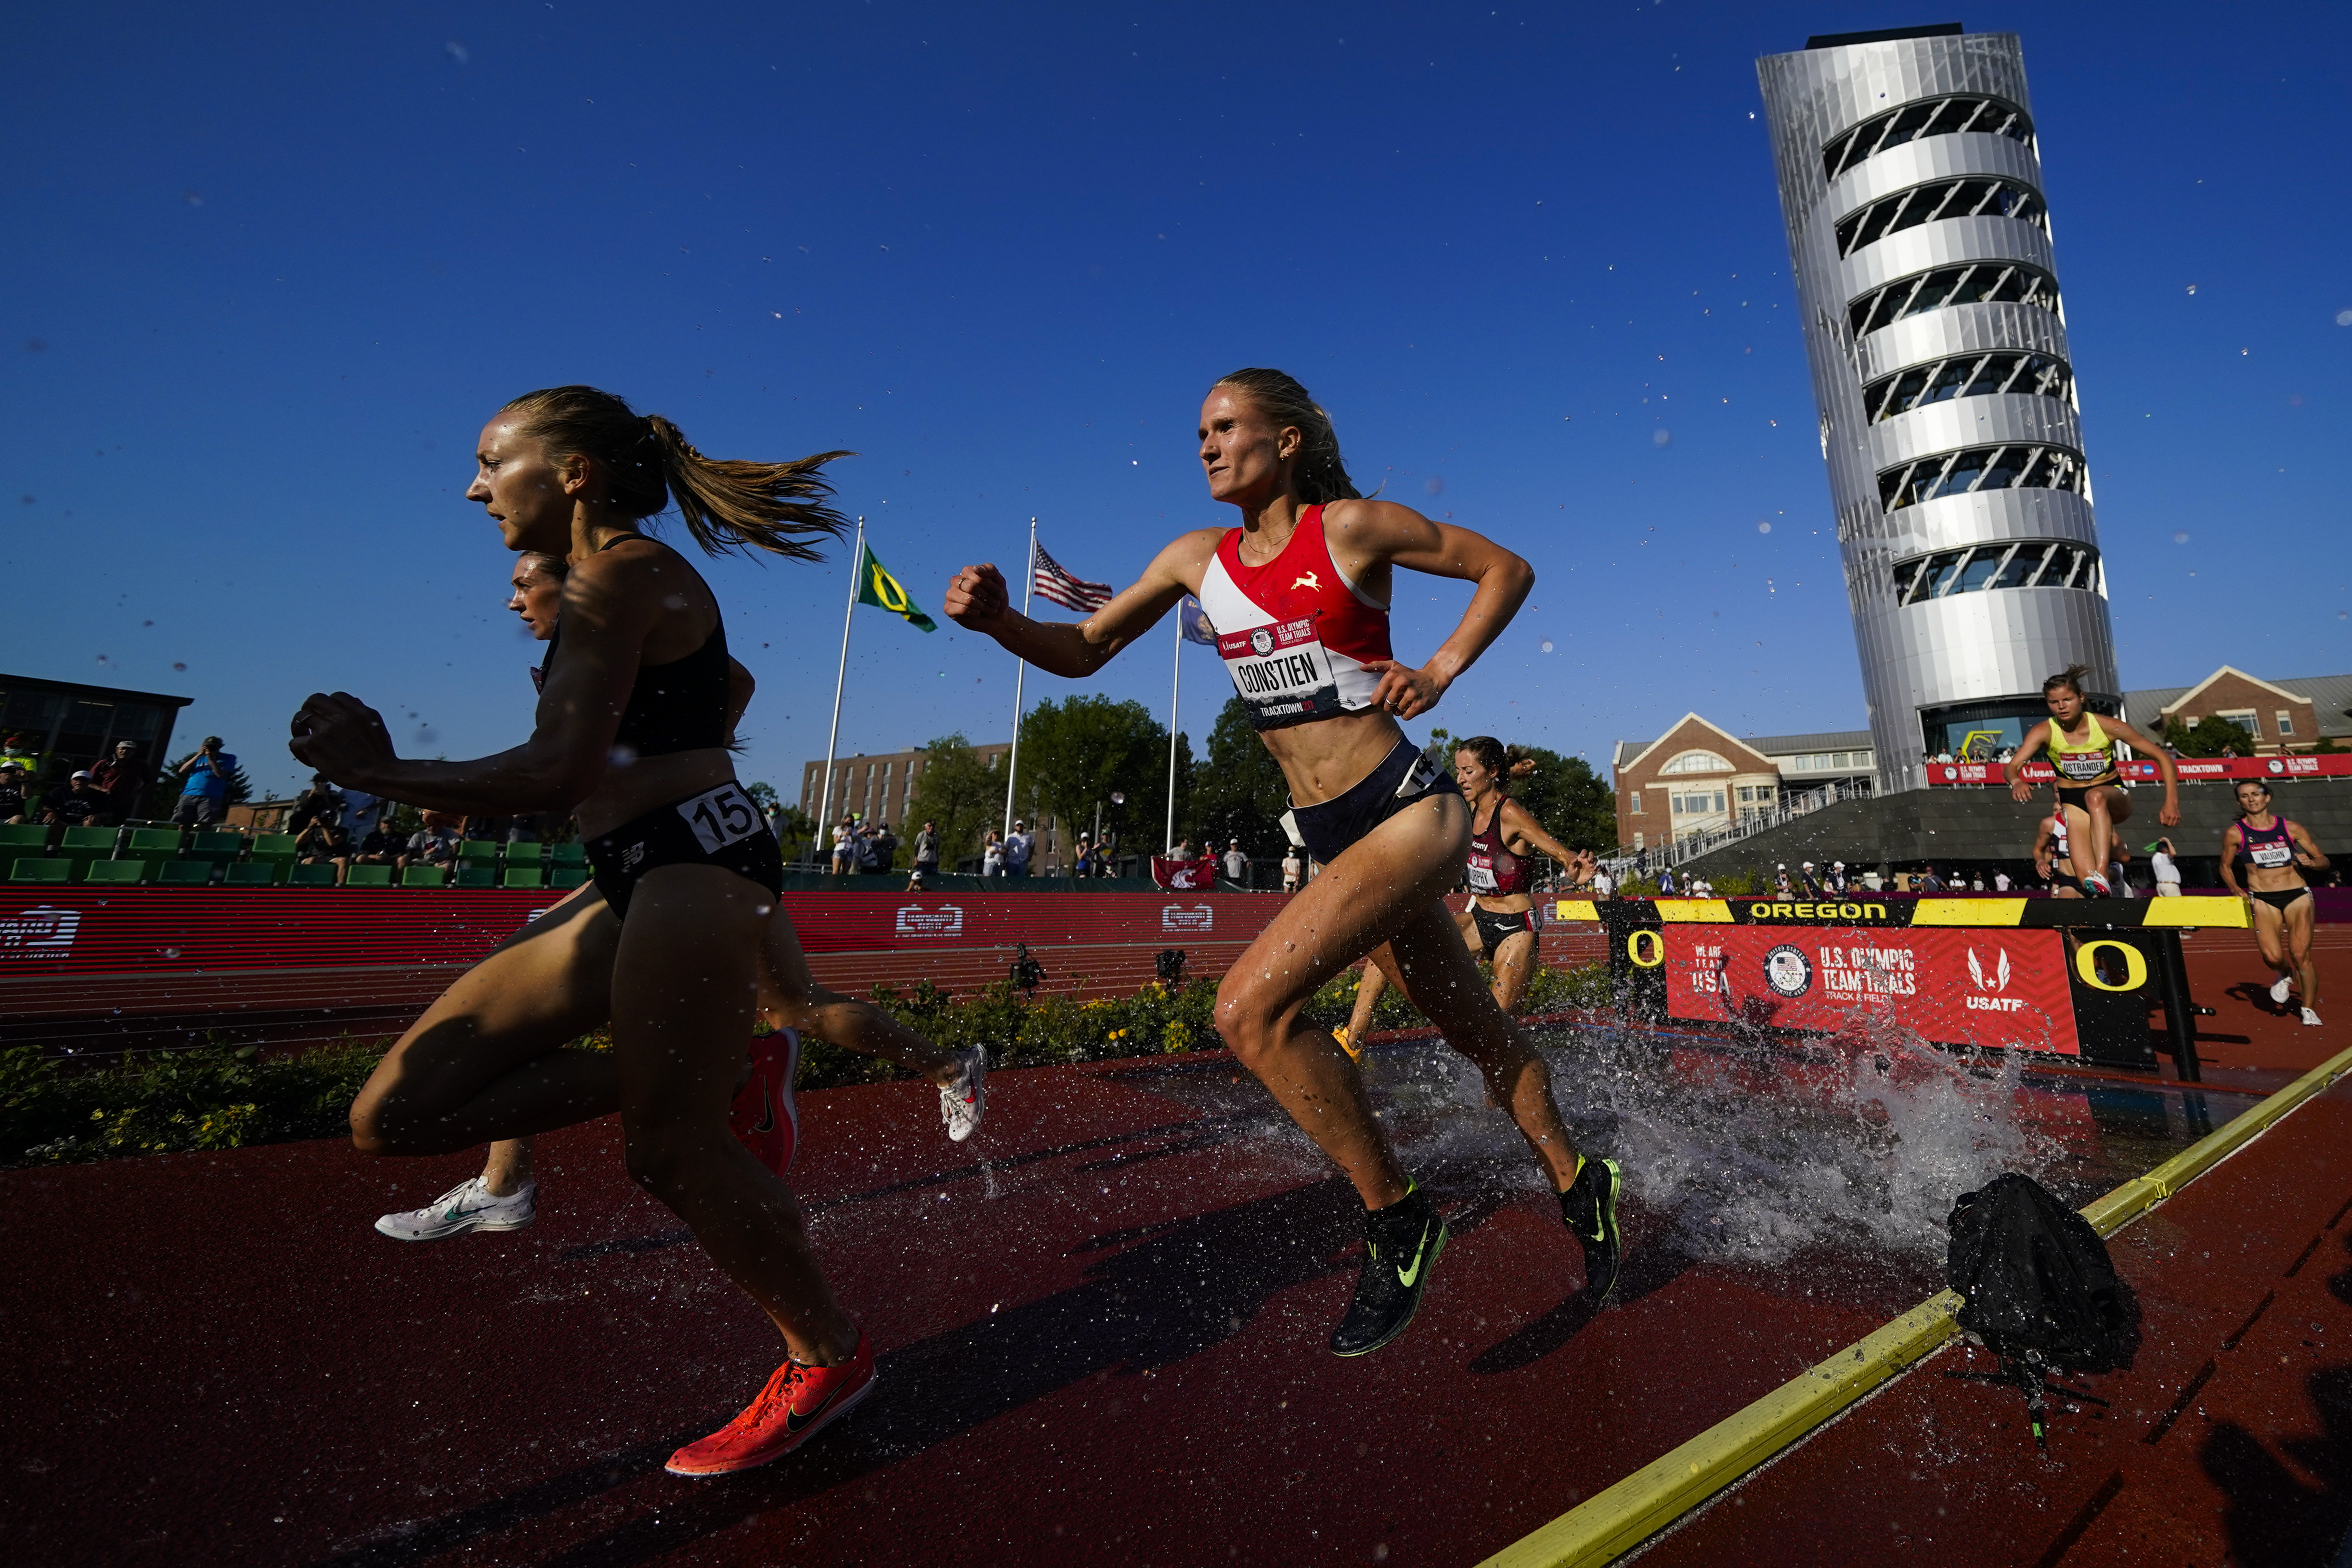 Athletes compete in the women's 3,000 meter steeplechase heats at the U.S. Olympic Track and Field Trials.